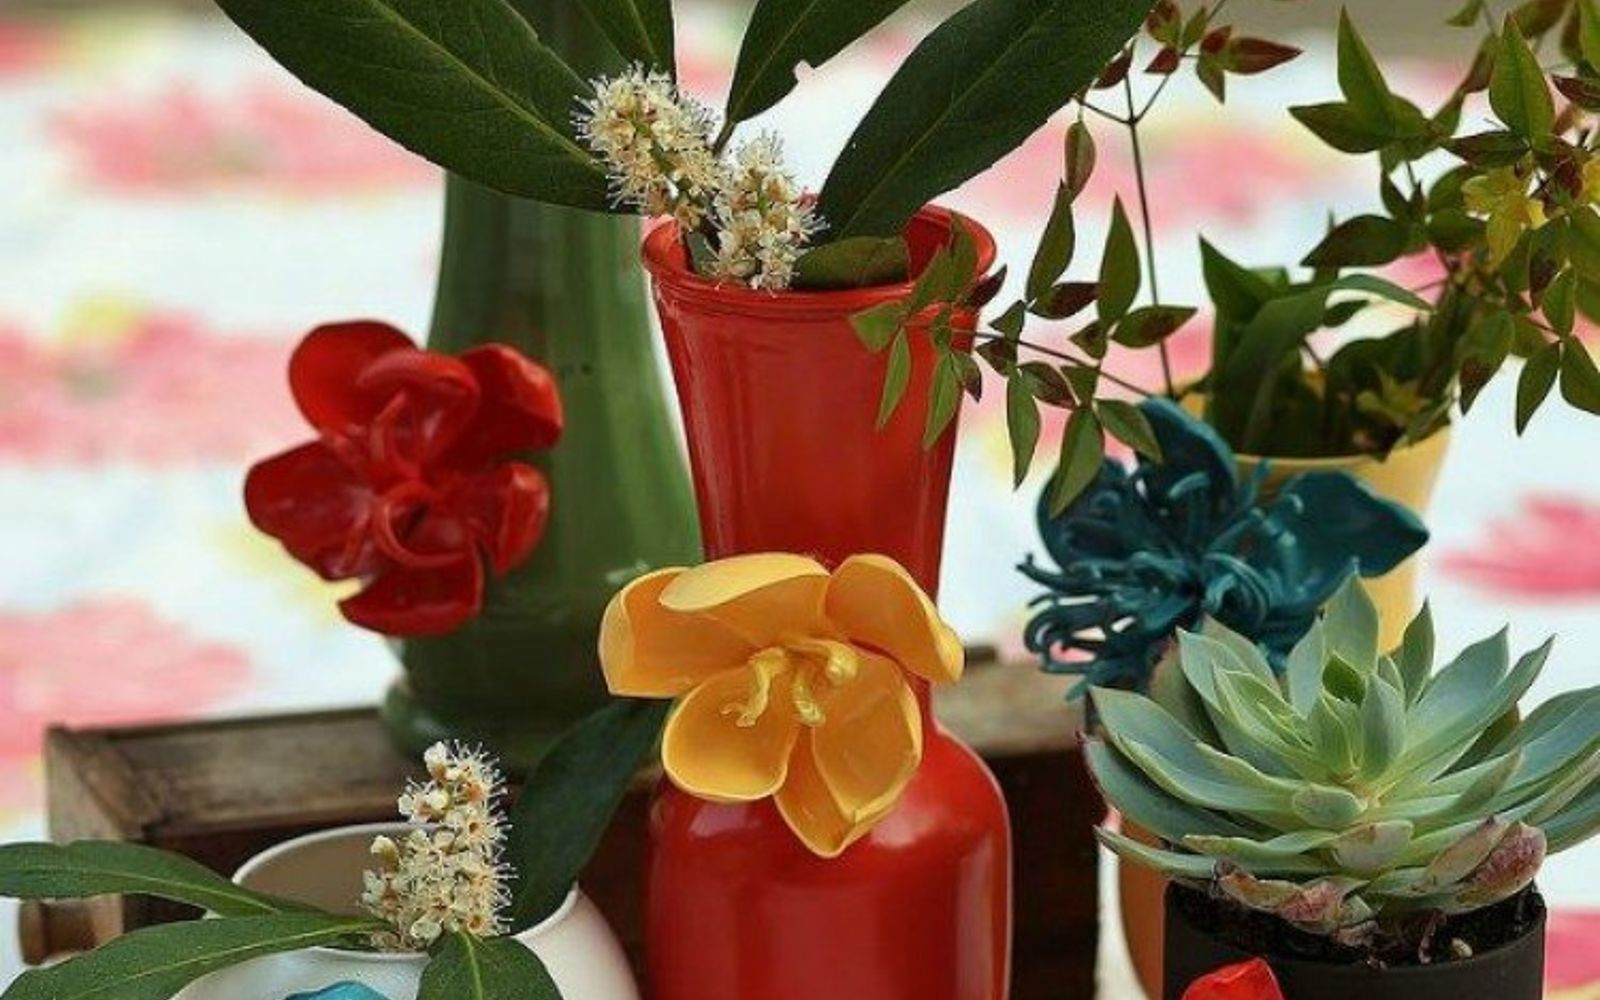 s 11 brilliant ways to reuse plastic spoons, Melt them into vase flowers